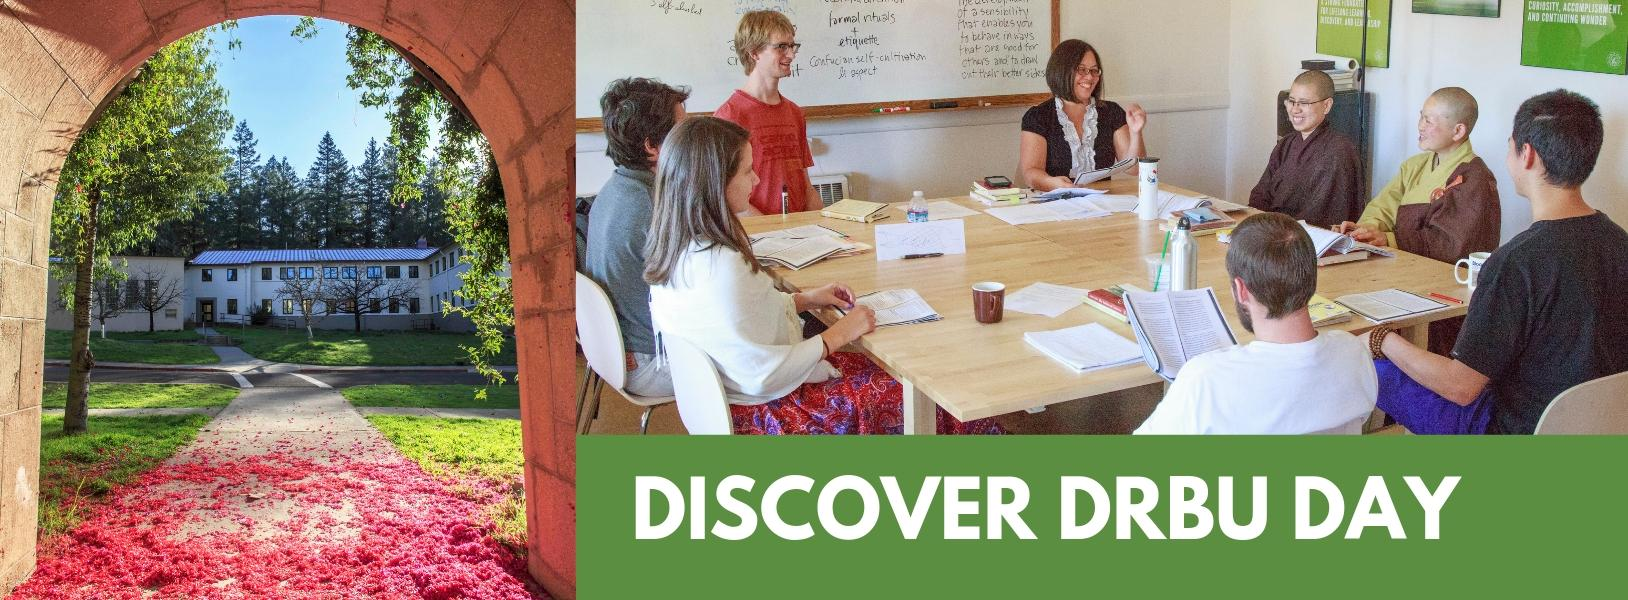 Banner for Discover DRBU day